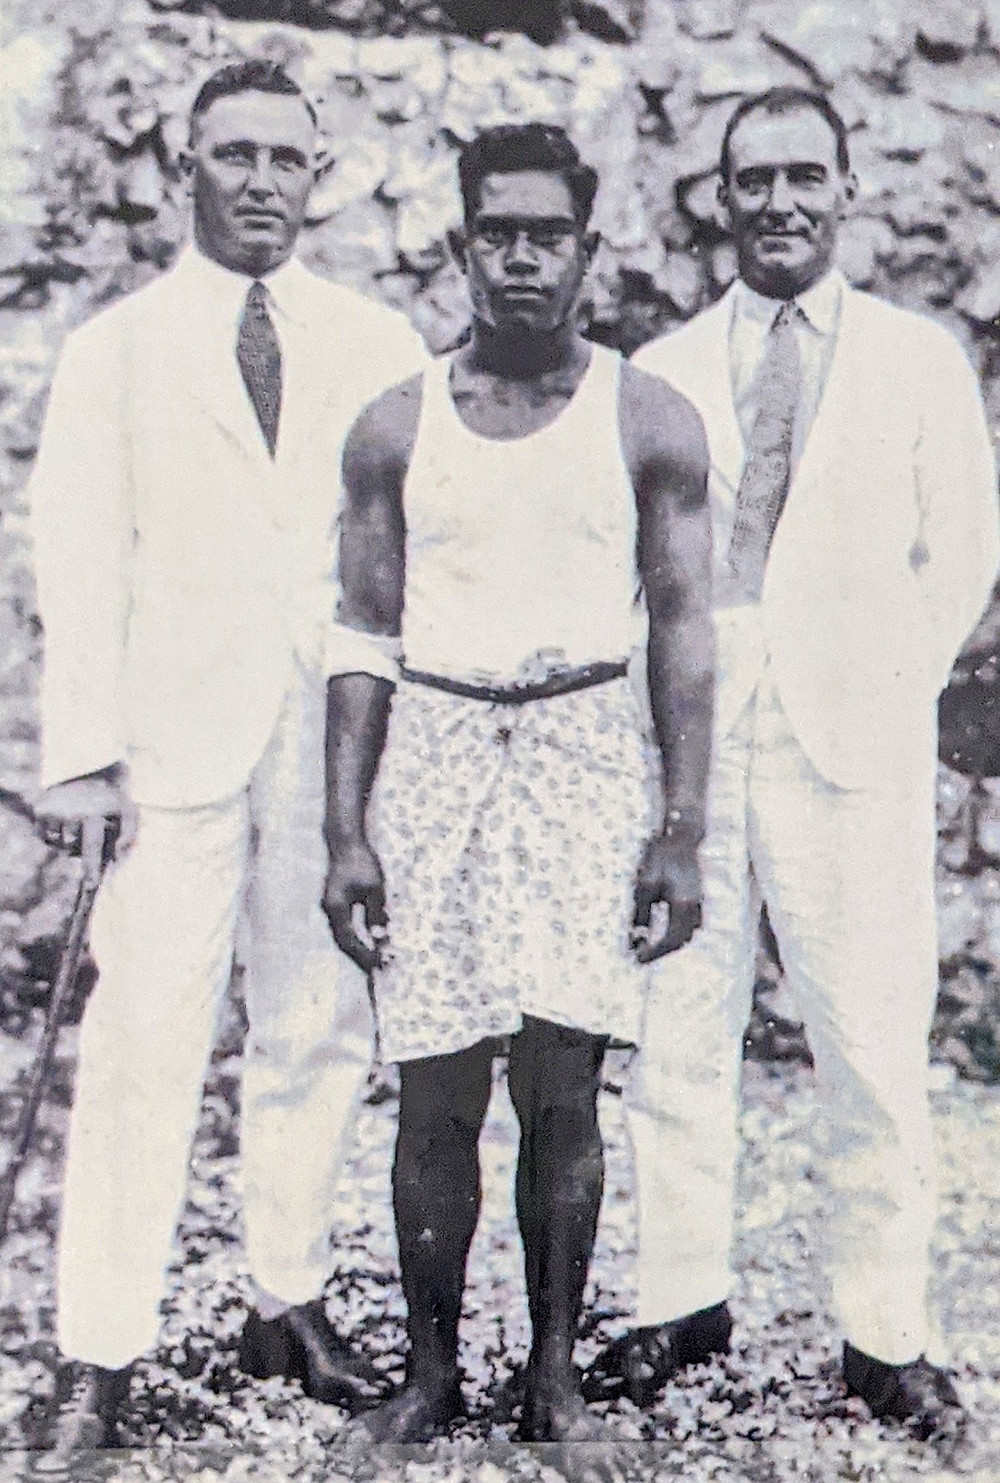 Tom Embleton on right, with Moaningeri and Bill Woods Ocean Island 1940s